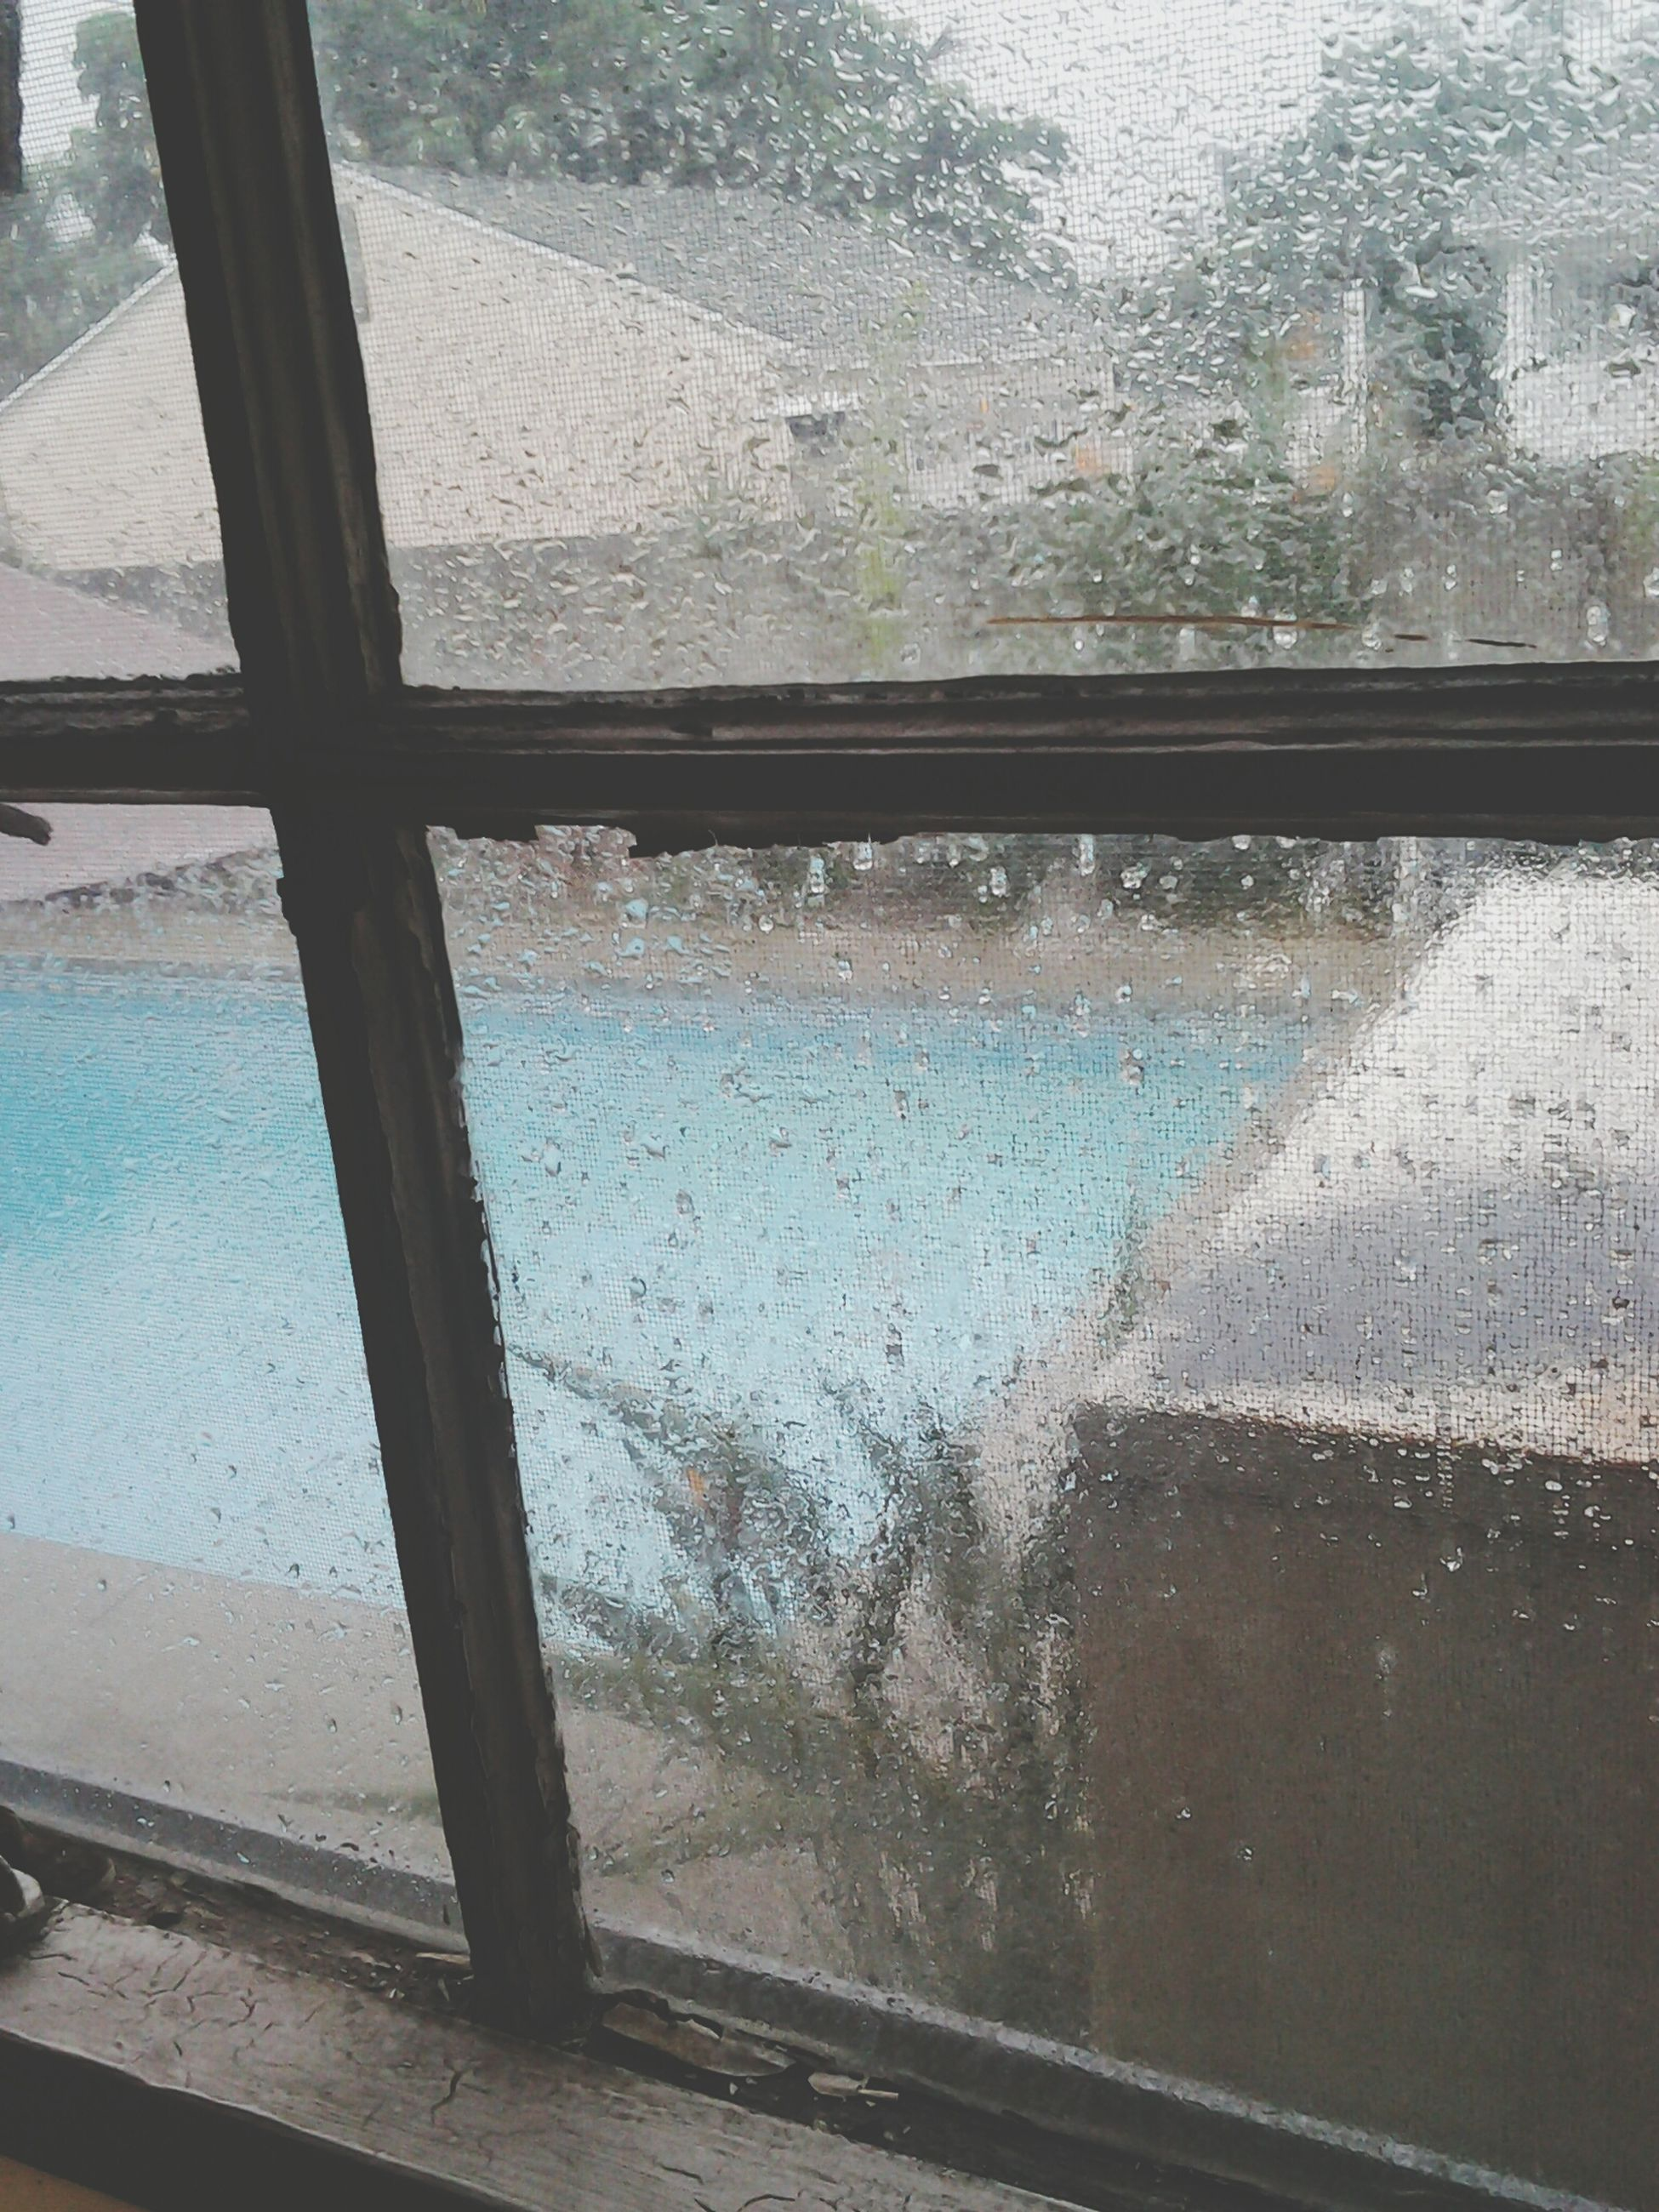 window, glass - material, transparent, water, indoors, drop, wet, looking through window, glass, close-up, rain, reflection, day, raindrop, full frame, no people, window sill, built structure, focus on foreground, backgrounds